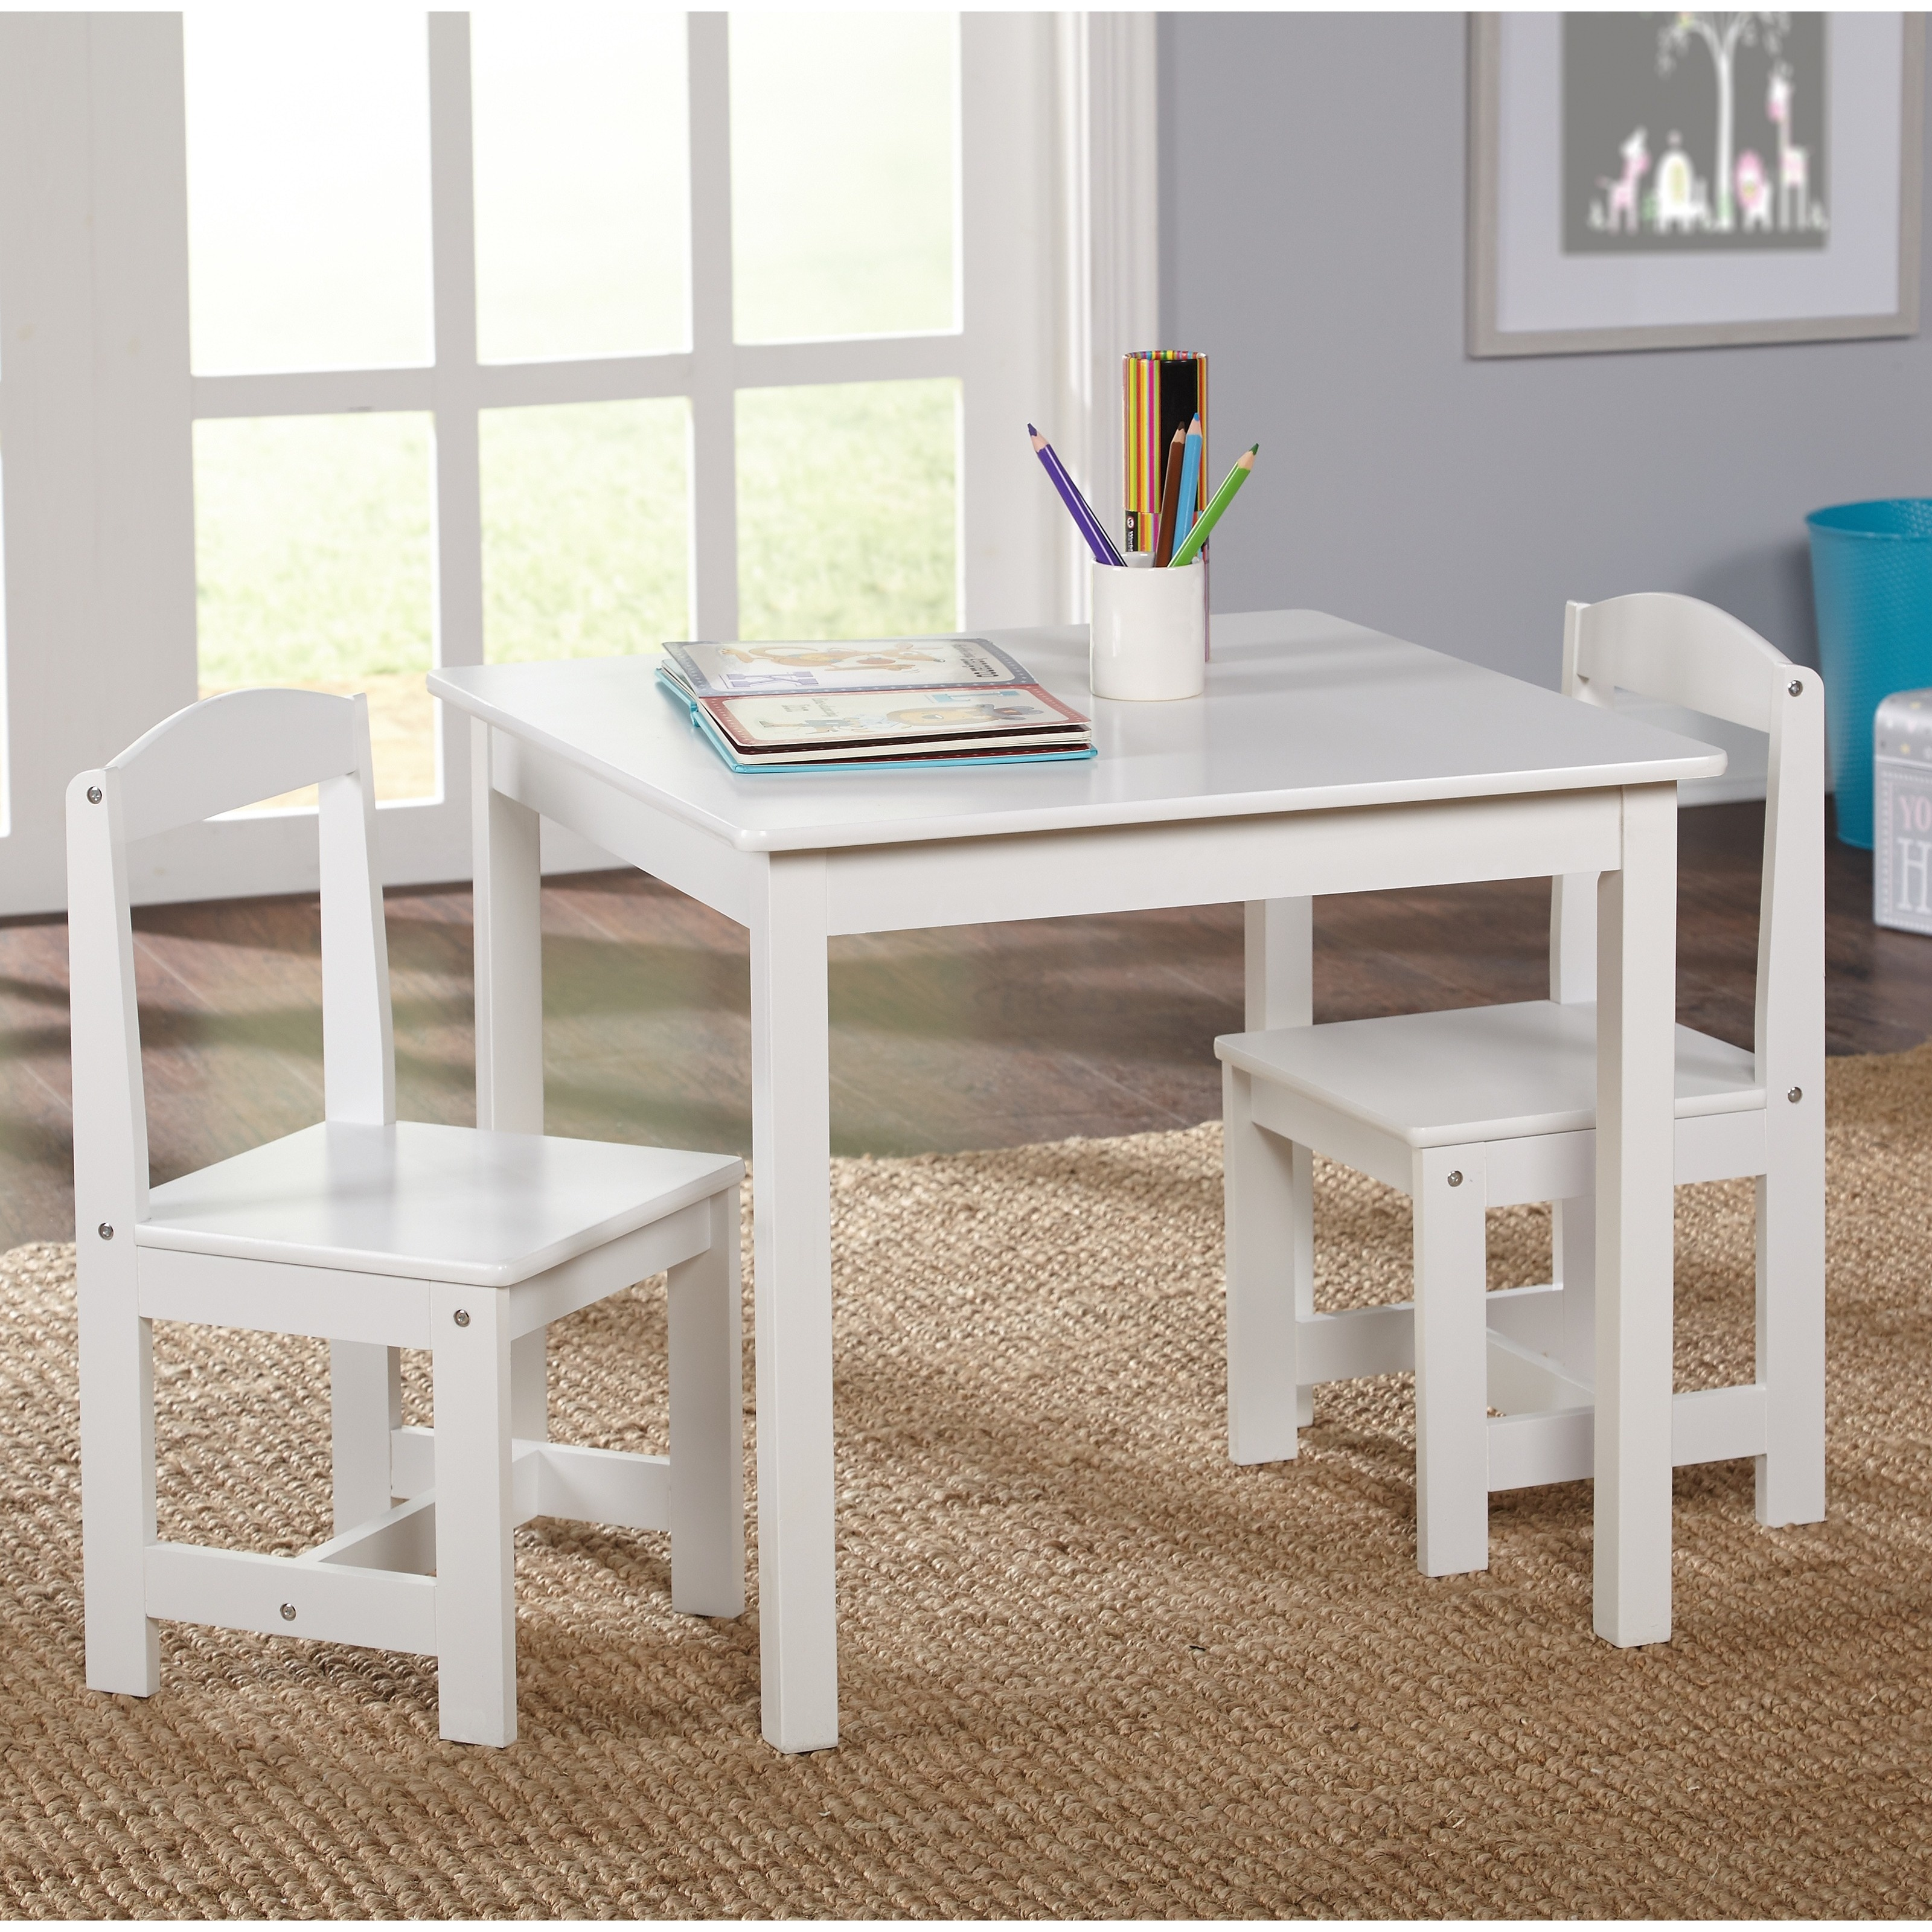 Childrens Table And Chair Set Simple Living White 3 Piece Hayden Kids Table Chair Set